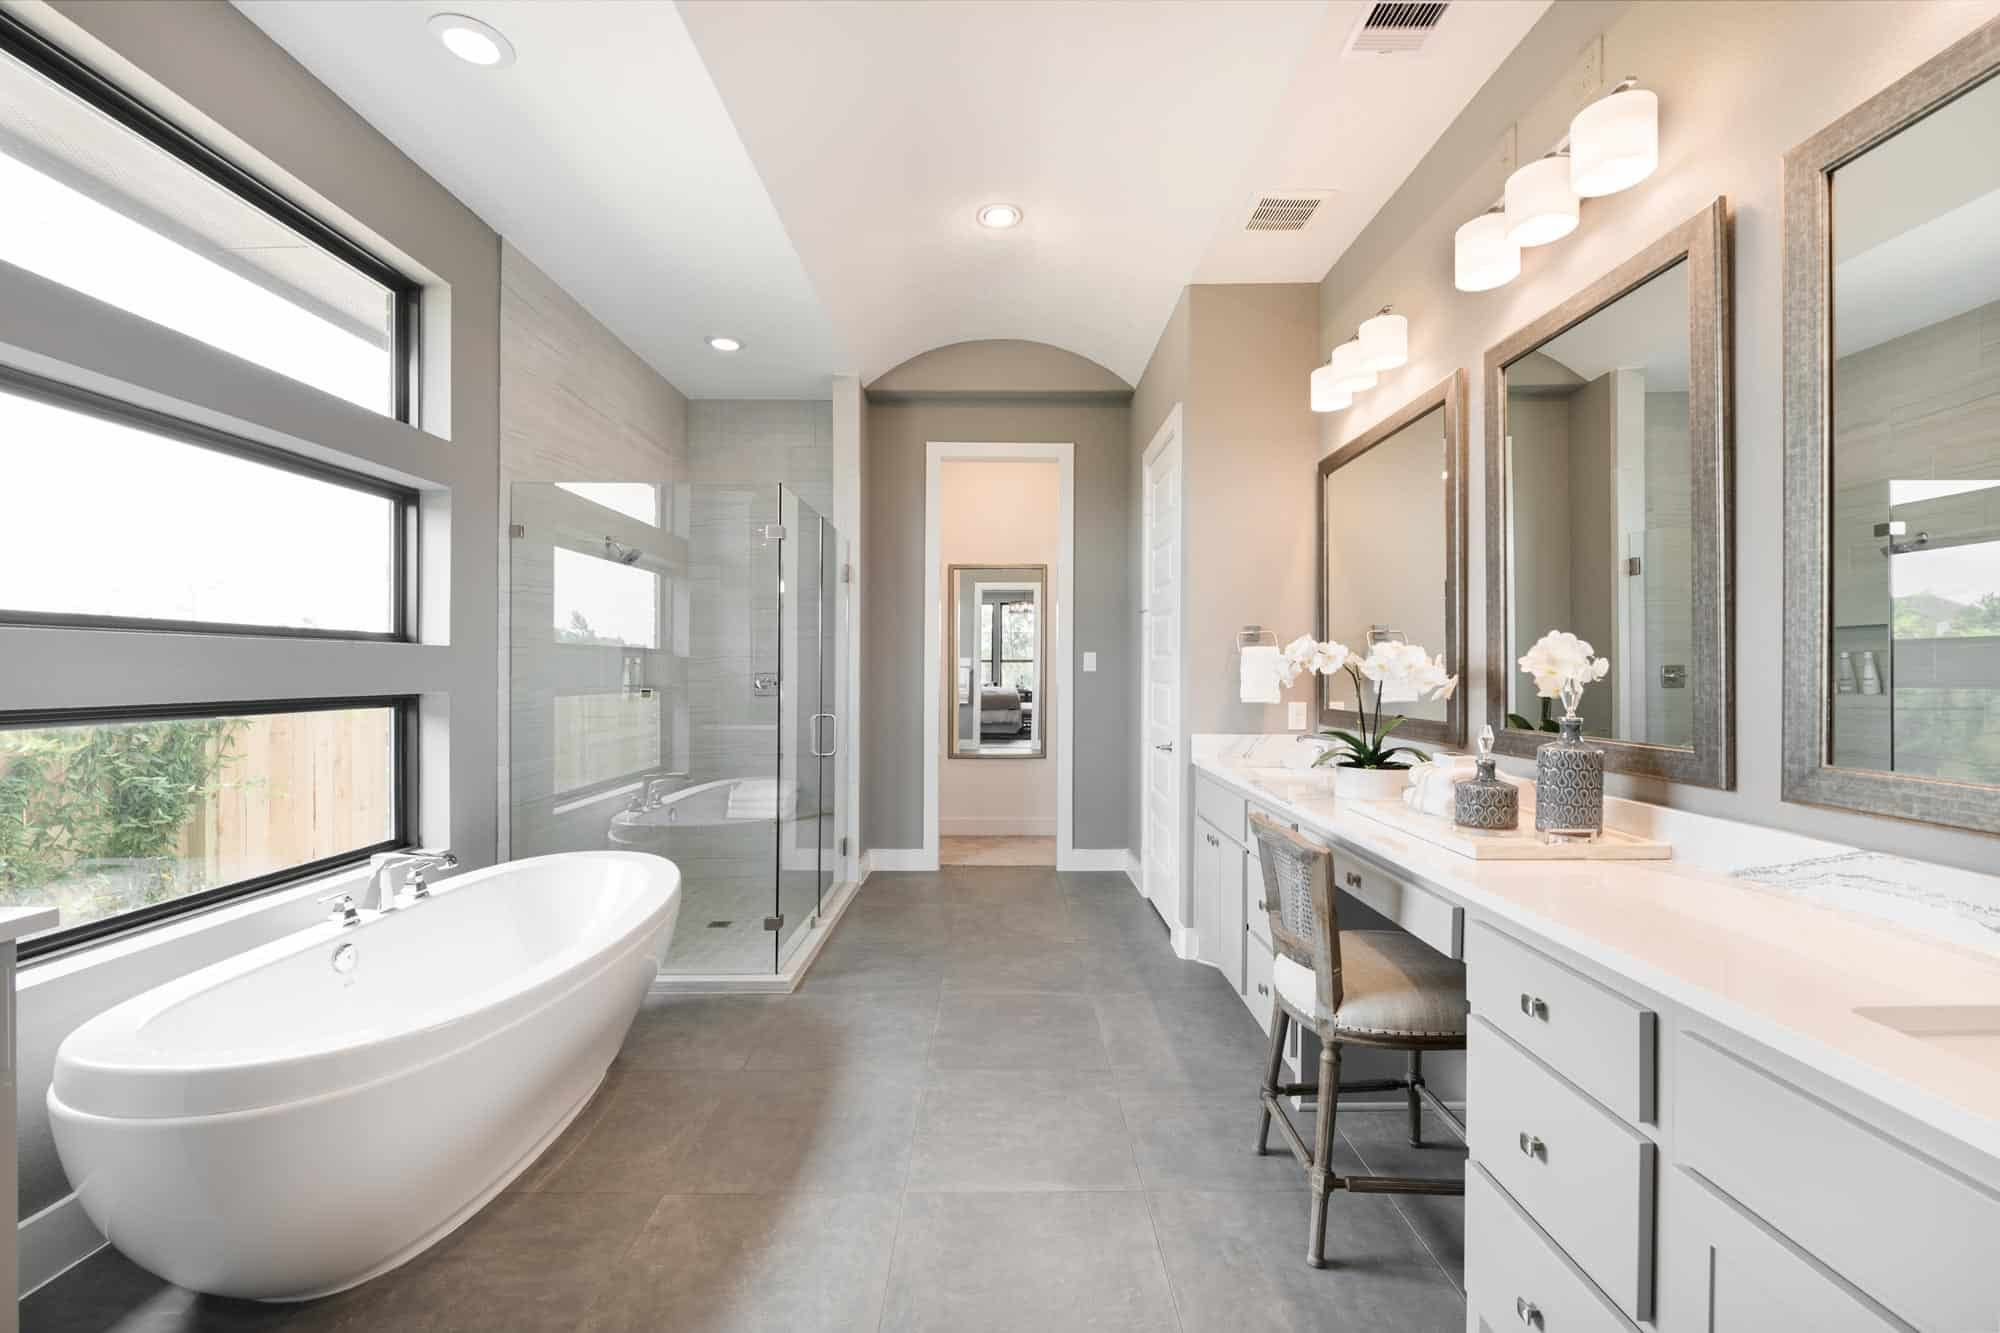 Bathroom featured in the Snyder By Tri Pointe Homes in Houston, TX